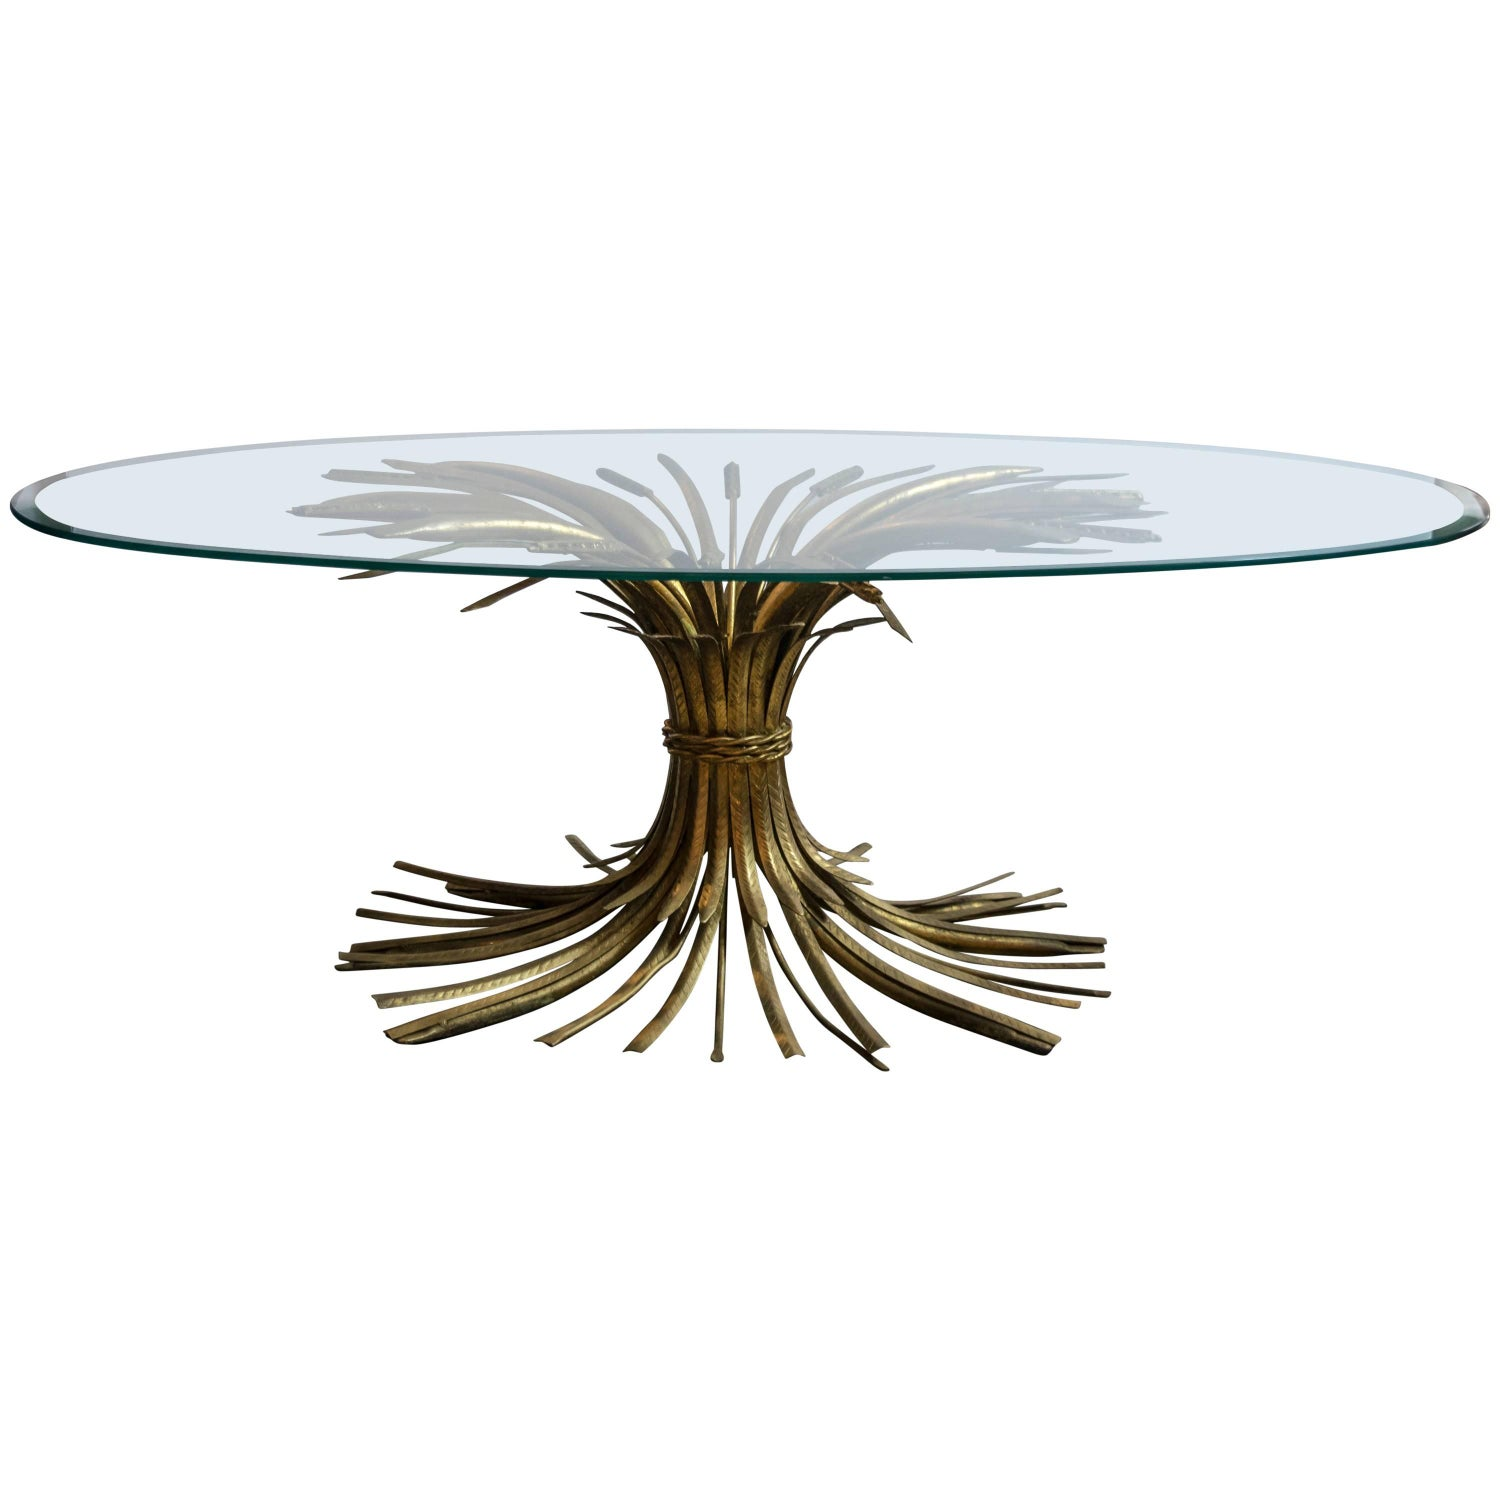 Brass Hollywood Regency Wheat Sheaf Oval Coffee Table For Sale at